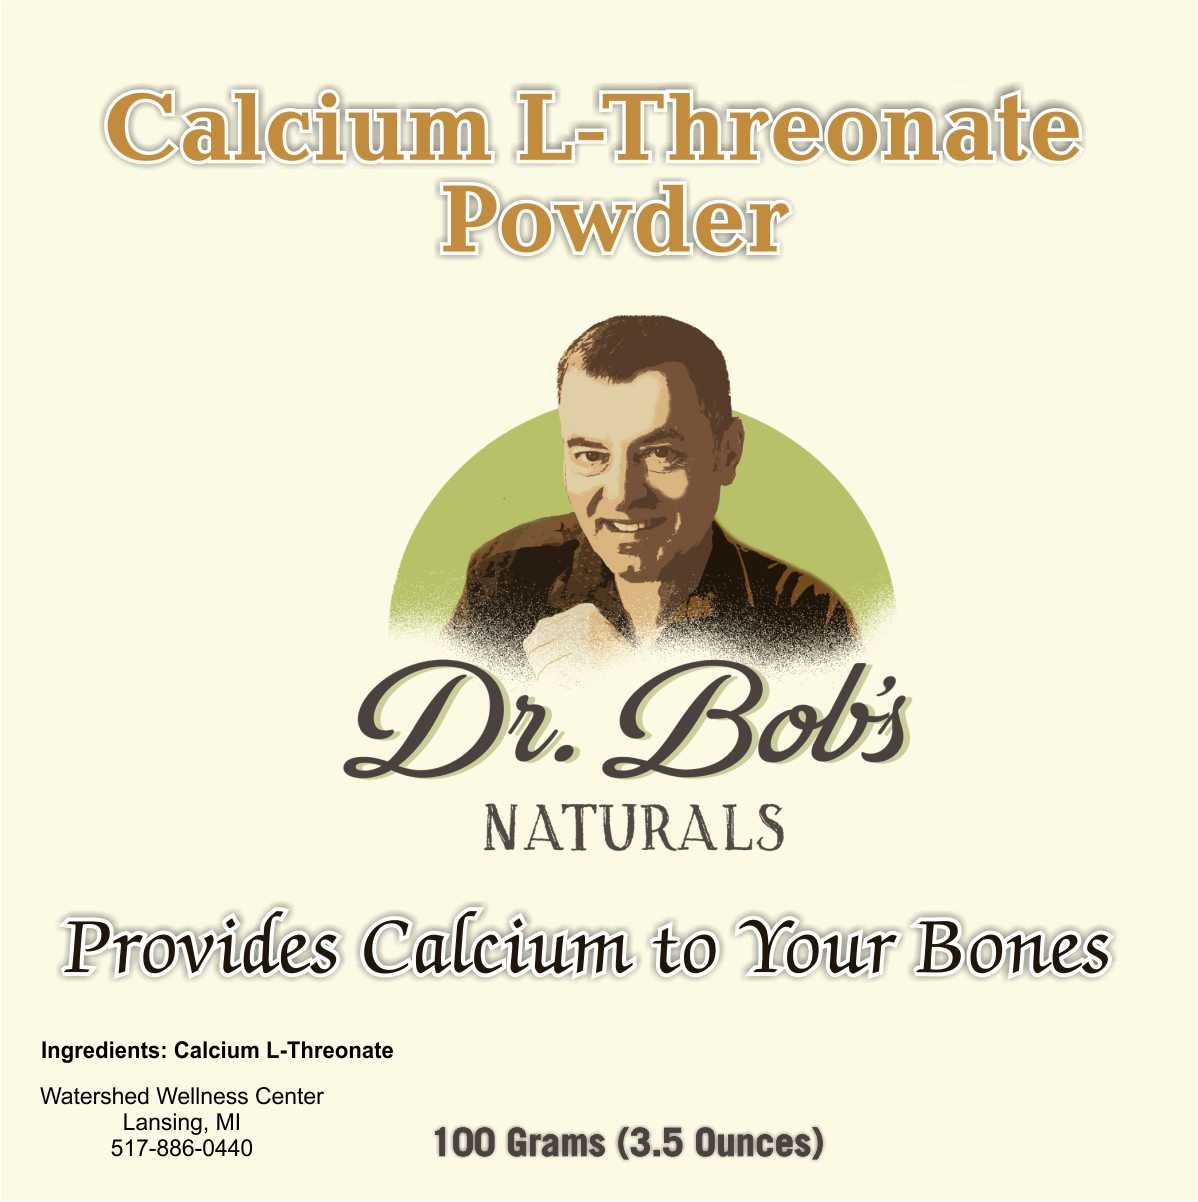 Calcium L-Threonate Powder